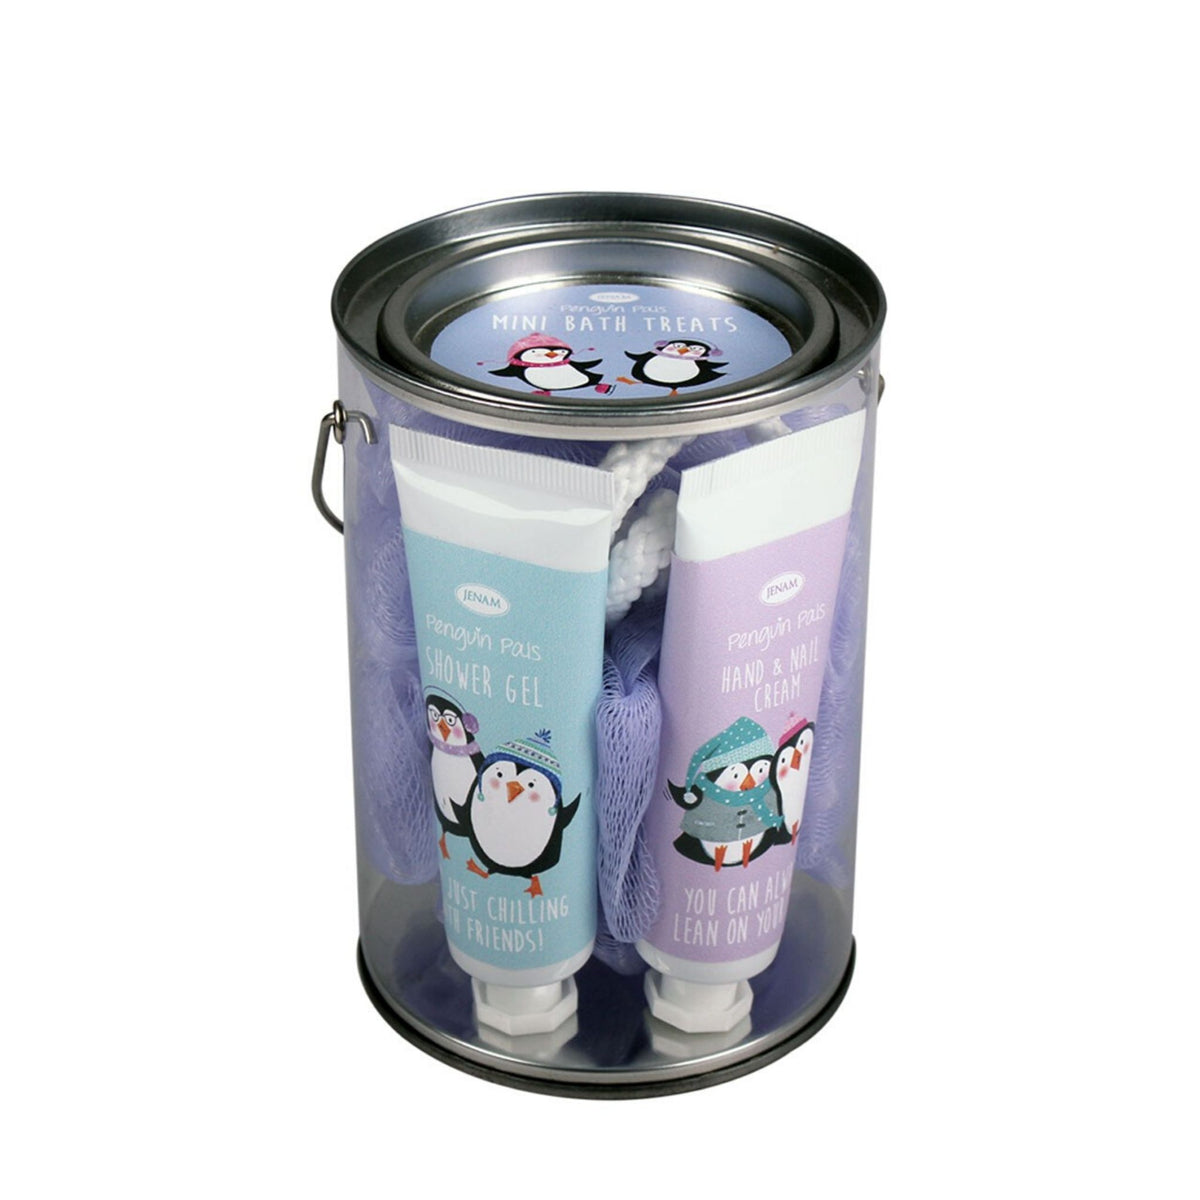 Penguin Pals Mini Bath Treats